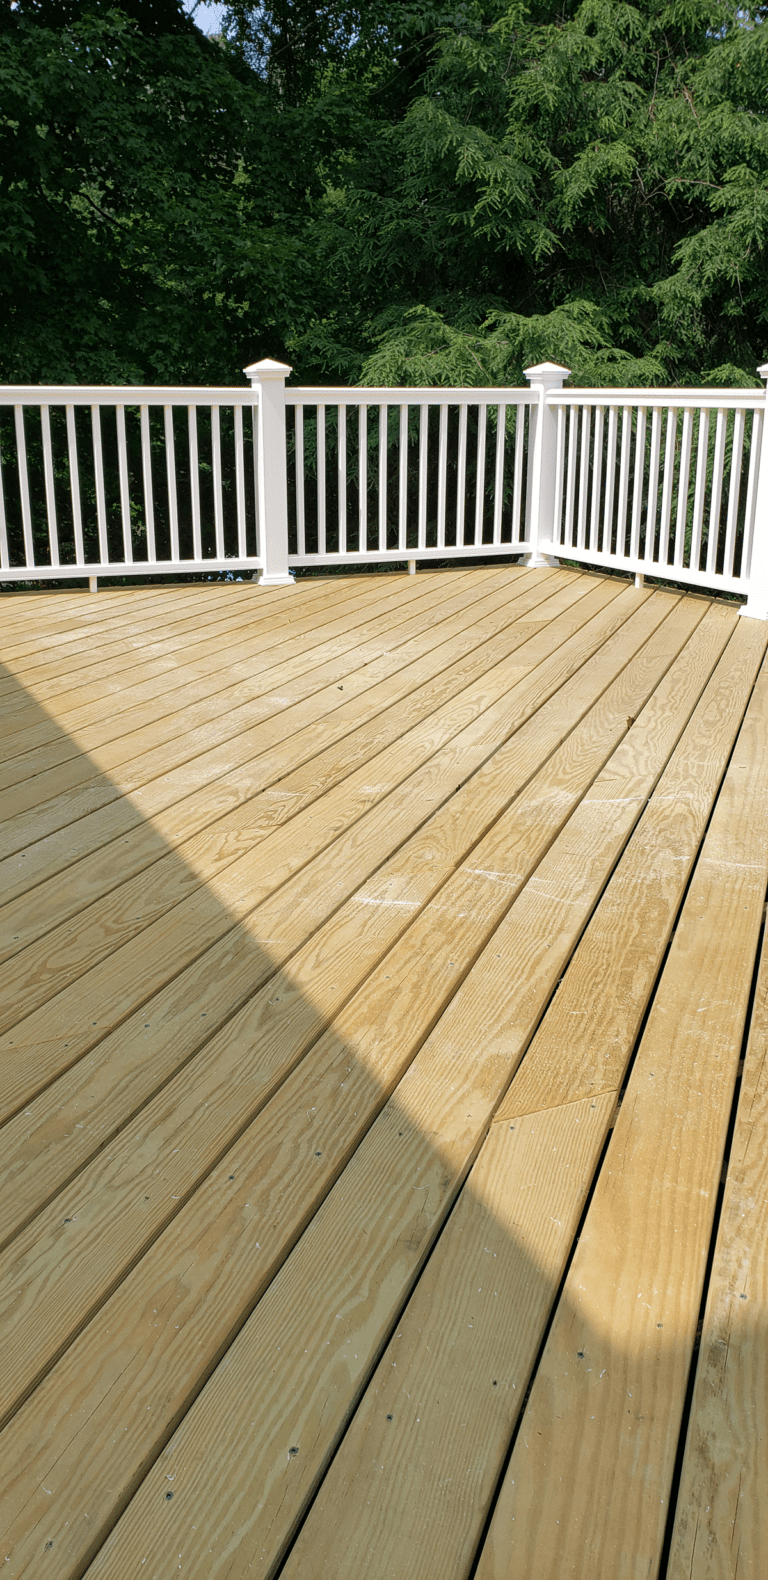 Pressure Treated Boards and Composite Railings will ensure that this new deck construction lasts for years to come